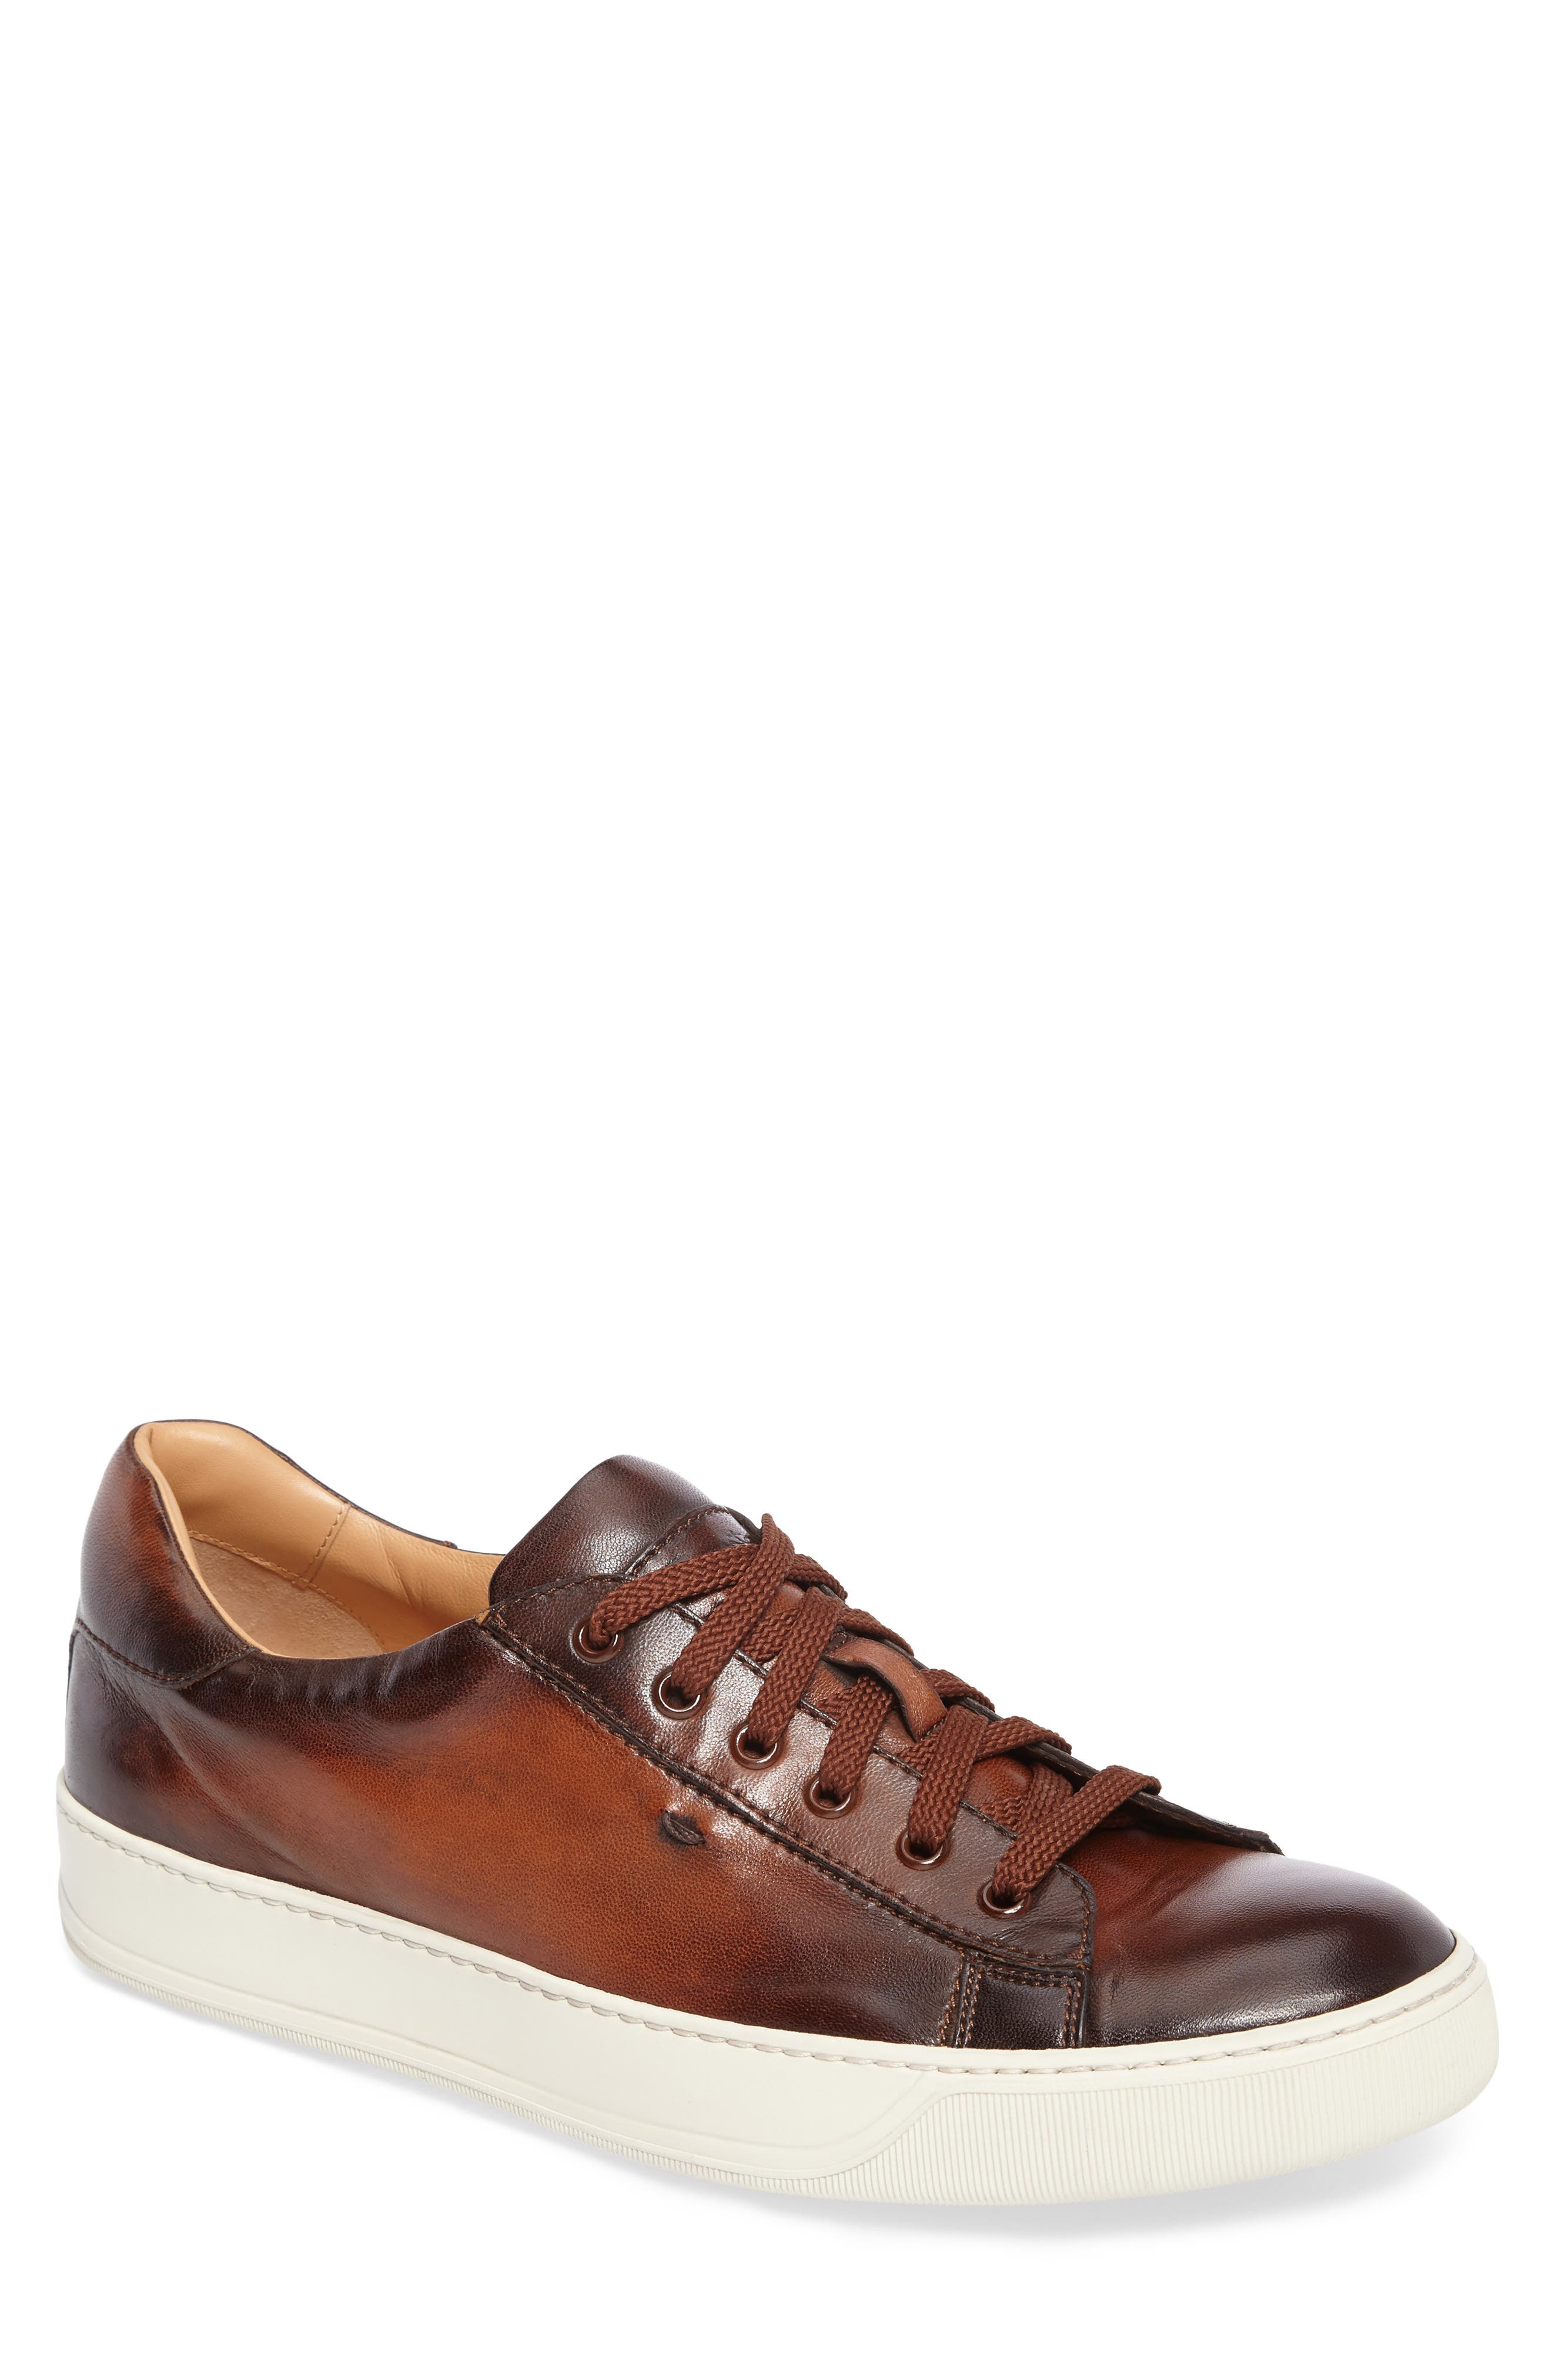 'Apache' Lace-Up Sneaker,                         Main,                         color, Brown